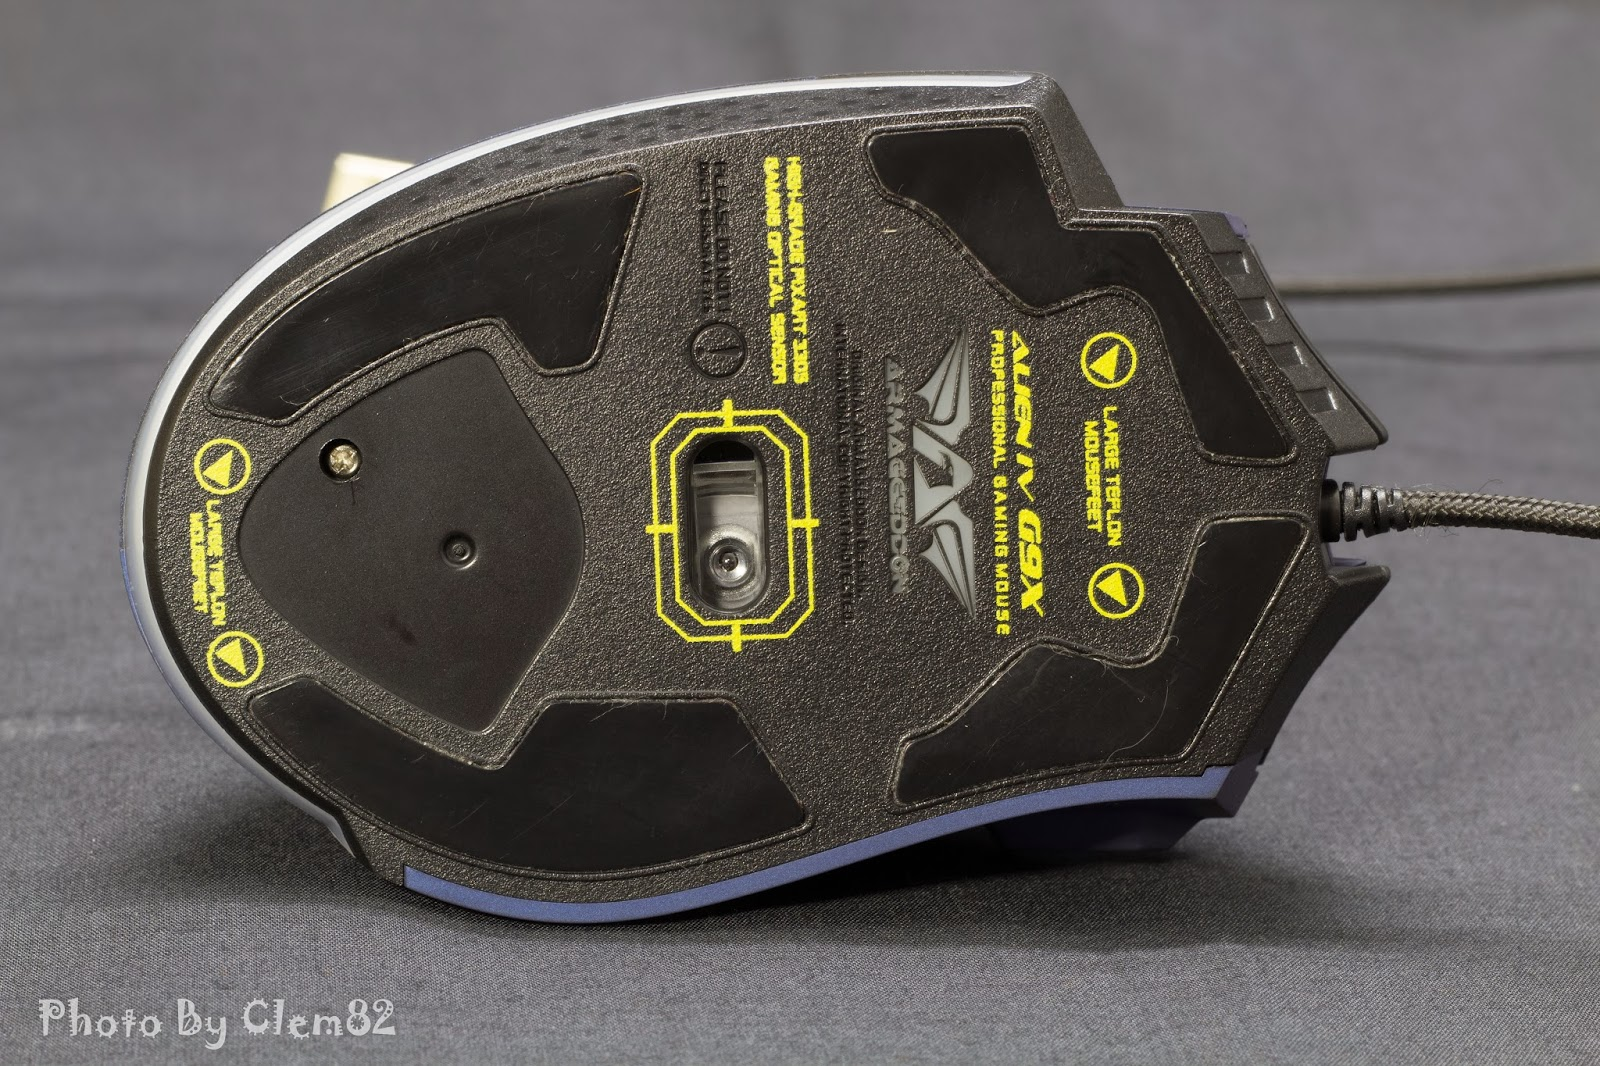 First Look & Review - Armaggeddon Alien IV G9X Optical Gaming Mouse 33